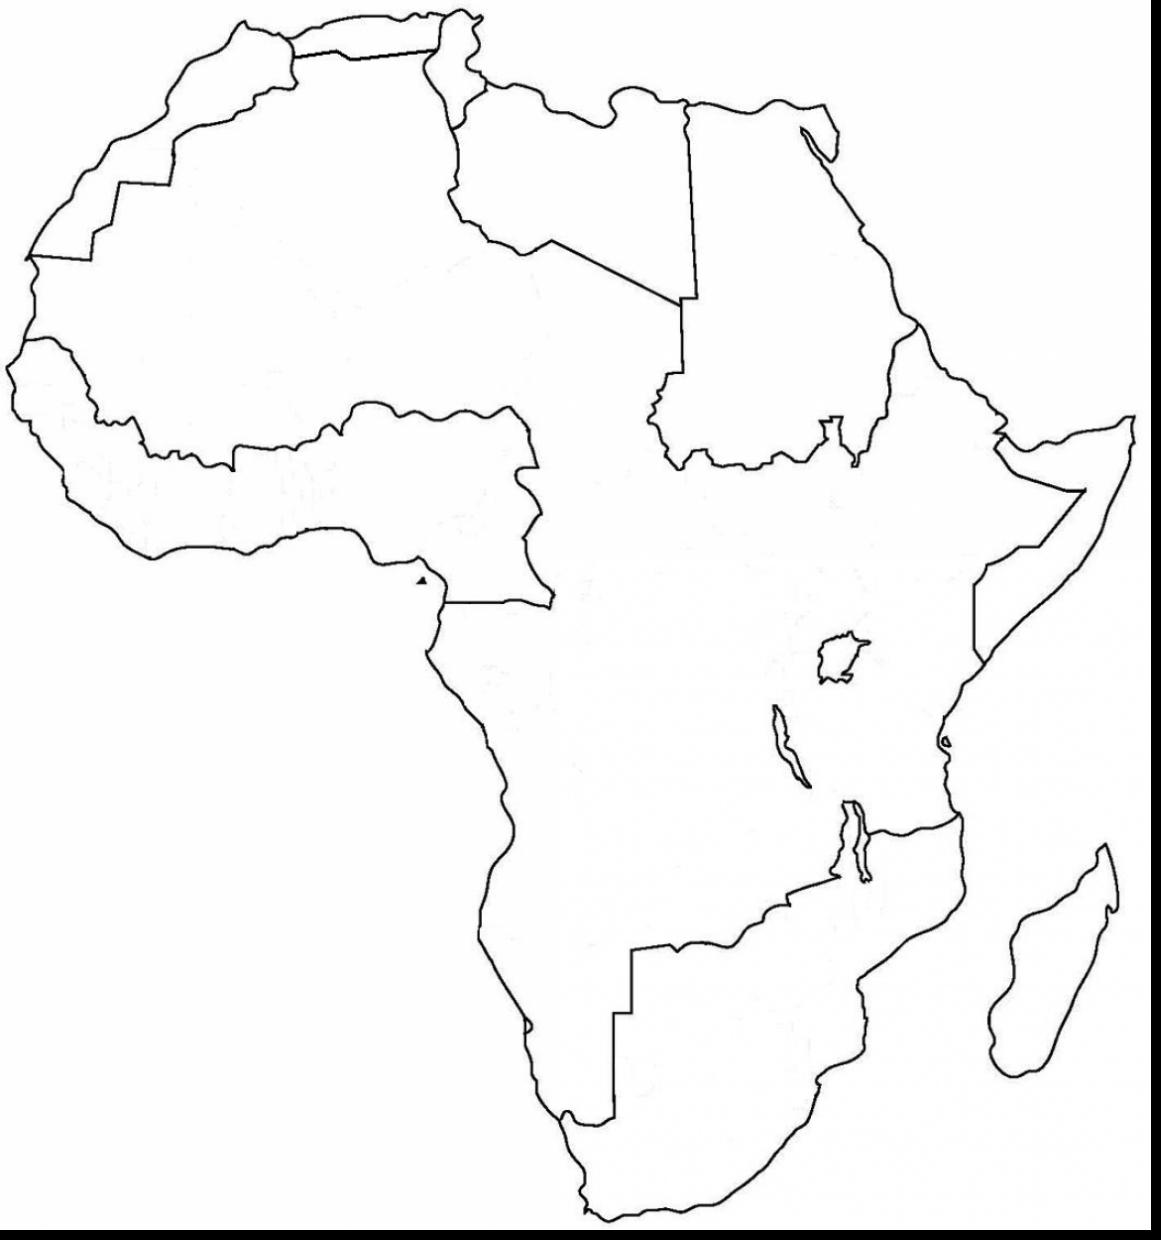 Africa Drawing at GetDrawings.com | Free for personal use Africa ...